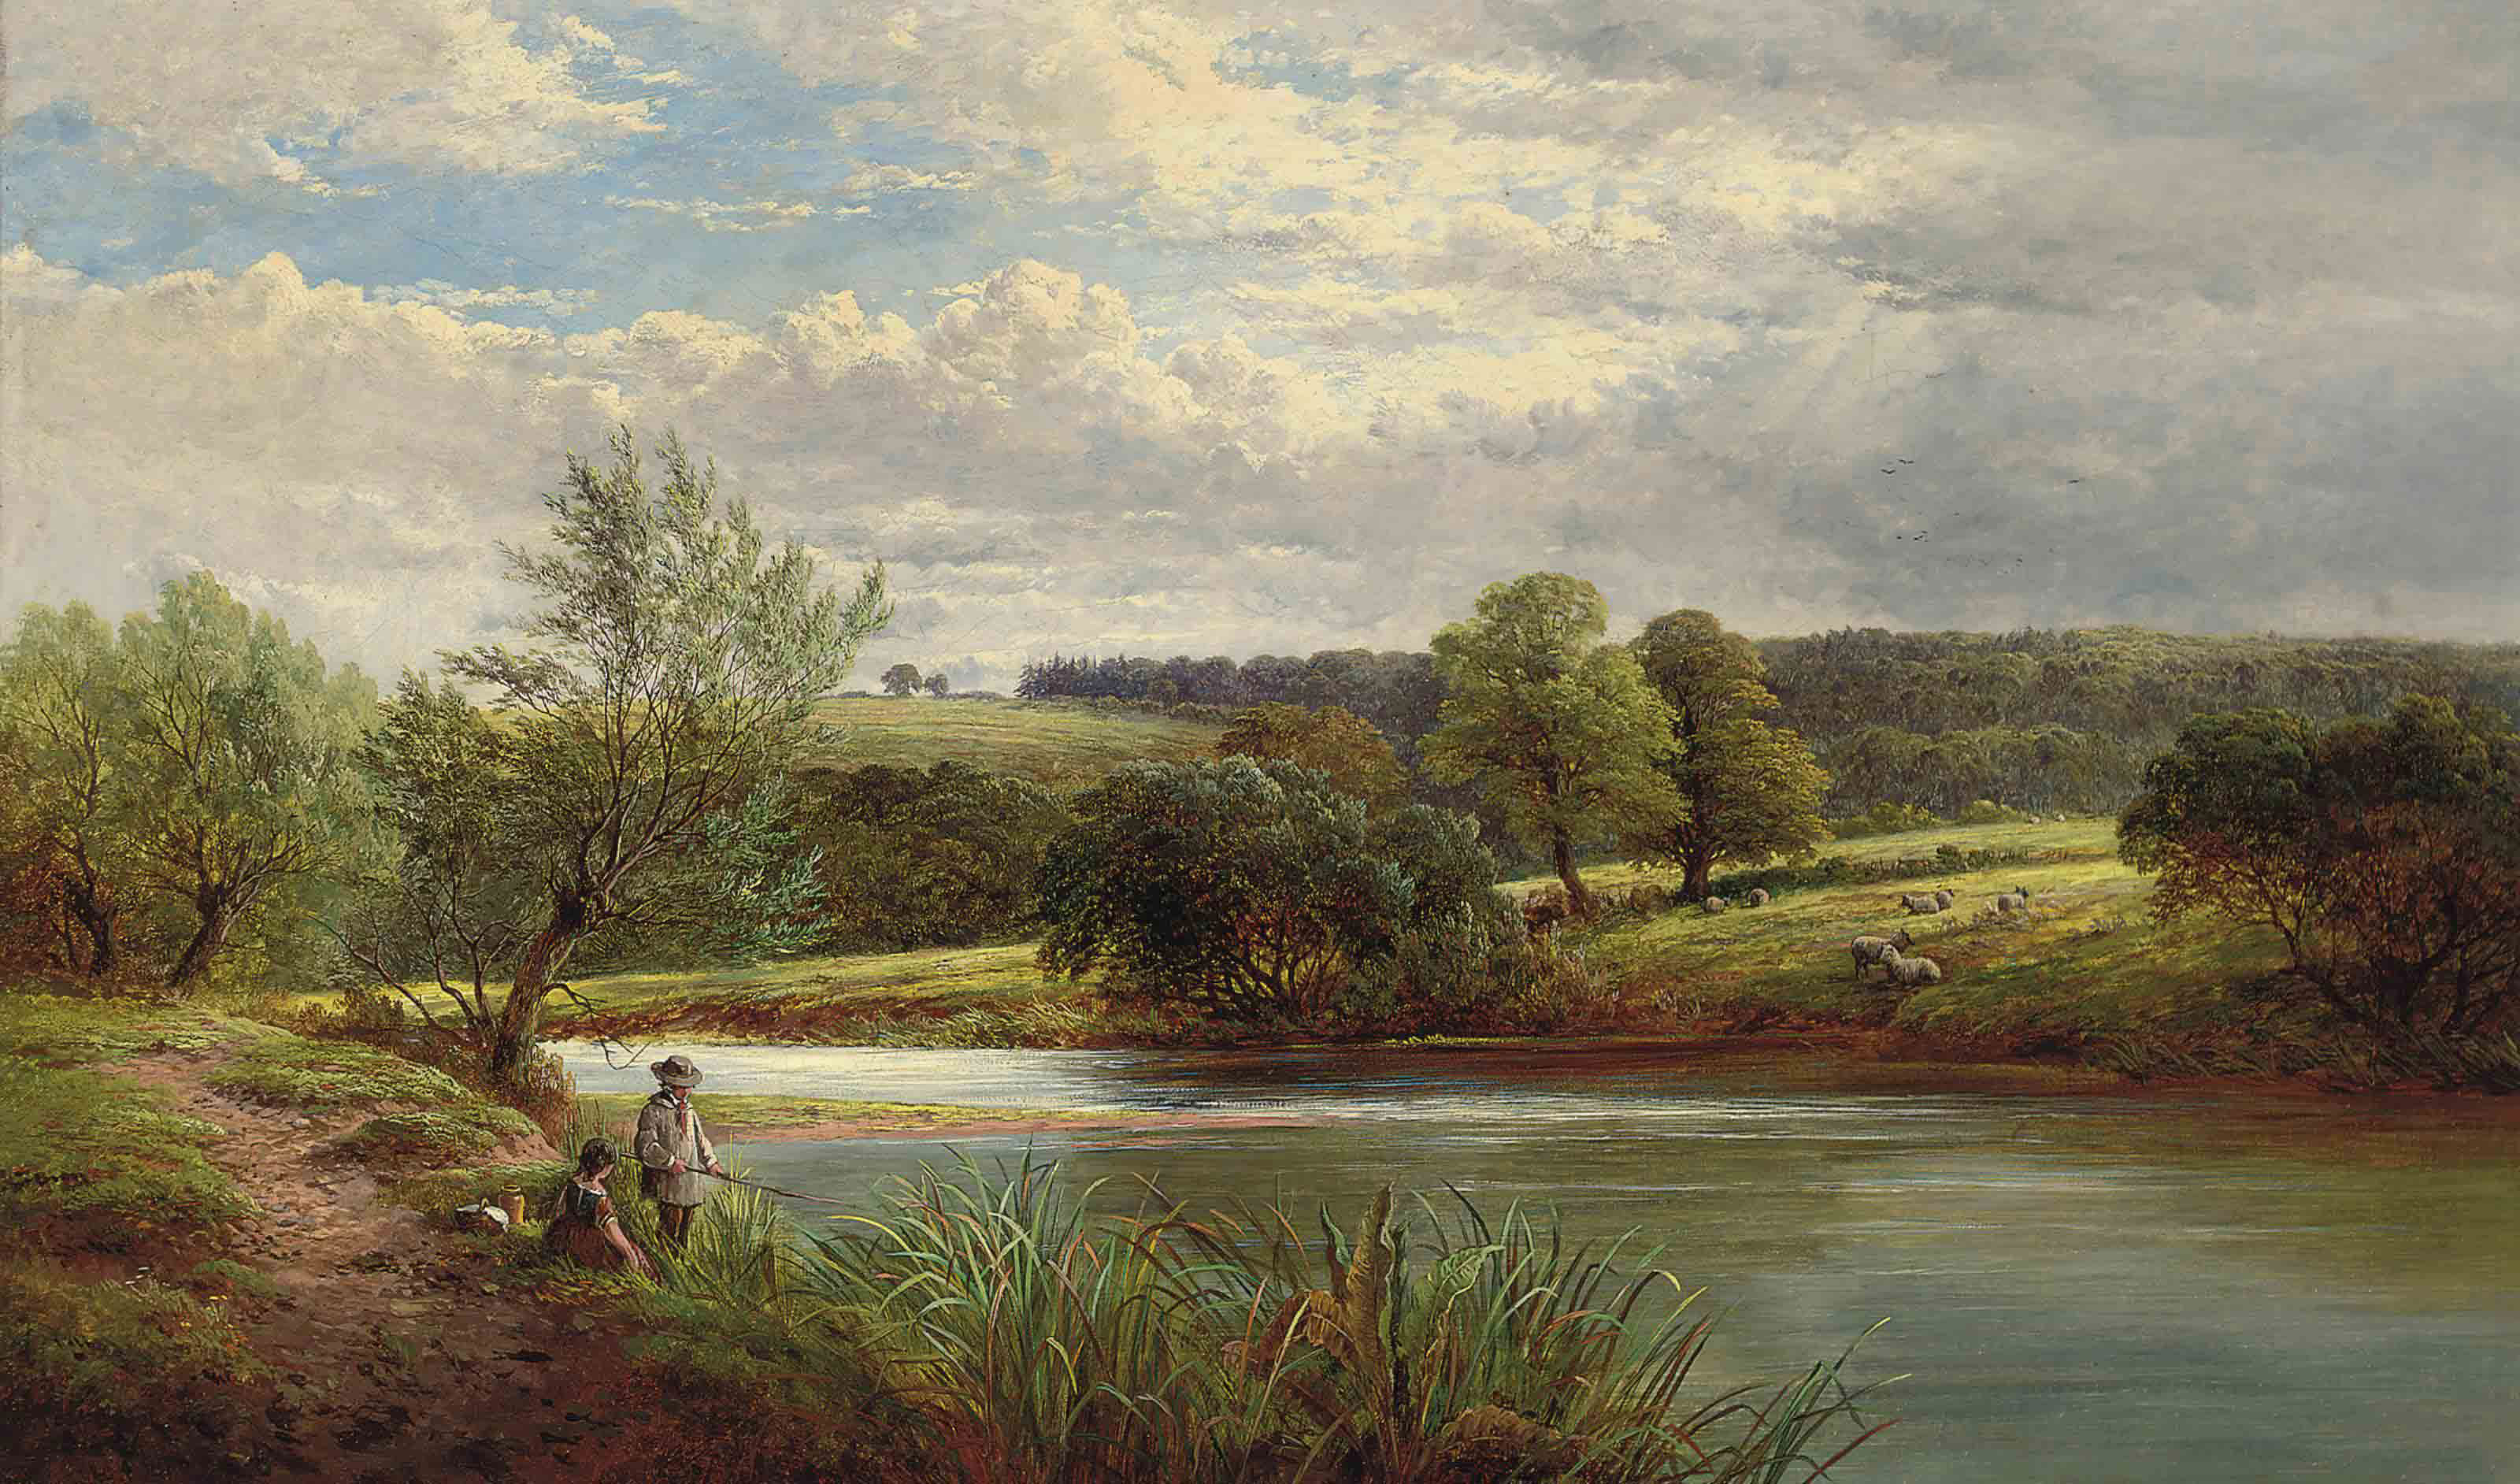 A day's fishing on the river